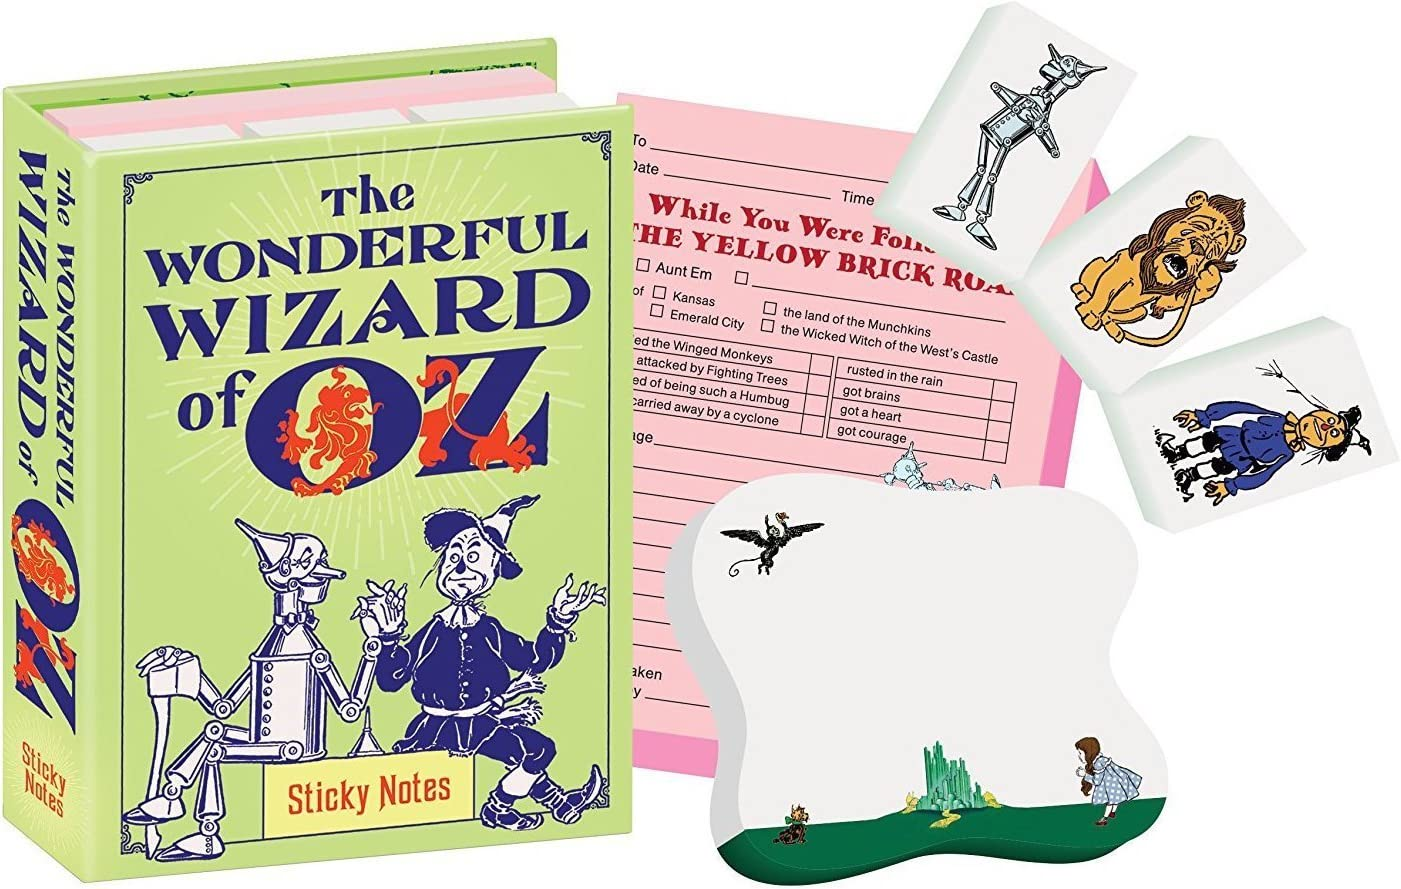 BLEOUK Wizard of Oz Inspired Gifts Daughter Niece Best Friend Birthday Gift Wizard of Oz Fans Gift Book Nerd Gift Wizard of Oz Gifts for Women